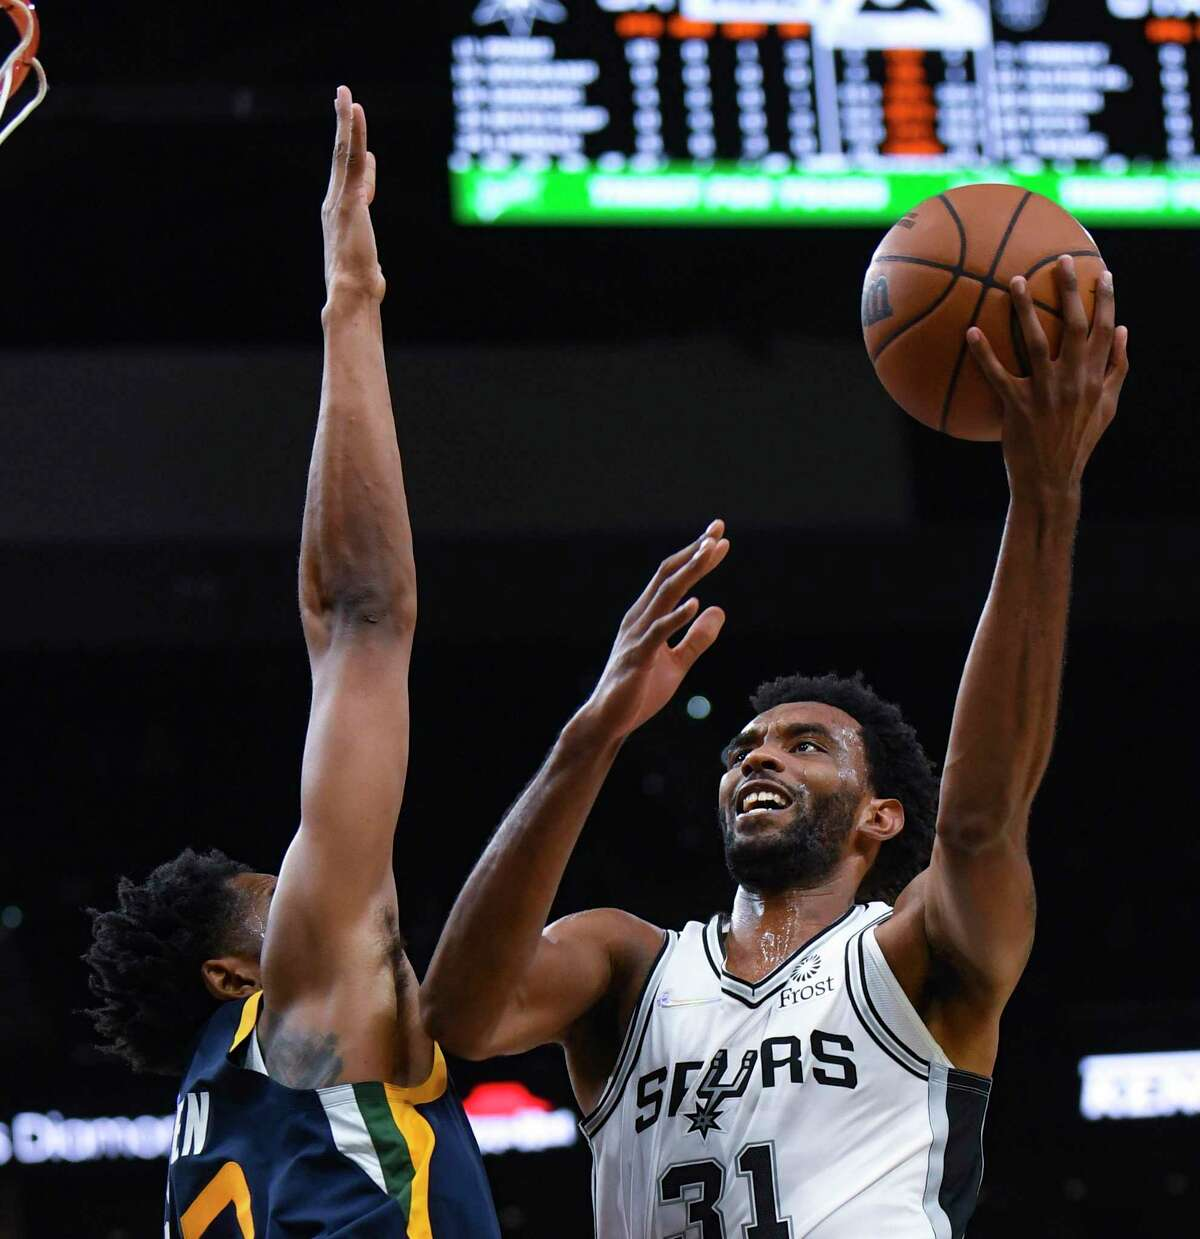 Keita Bates-Diop of the San Antonio Spurs shoots and scores during NBA preseason action in the AT&T Center on Monday, Oct. 4, 2021.